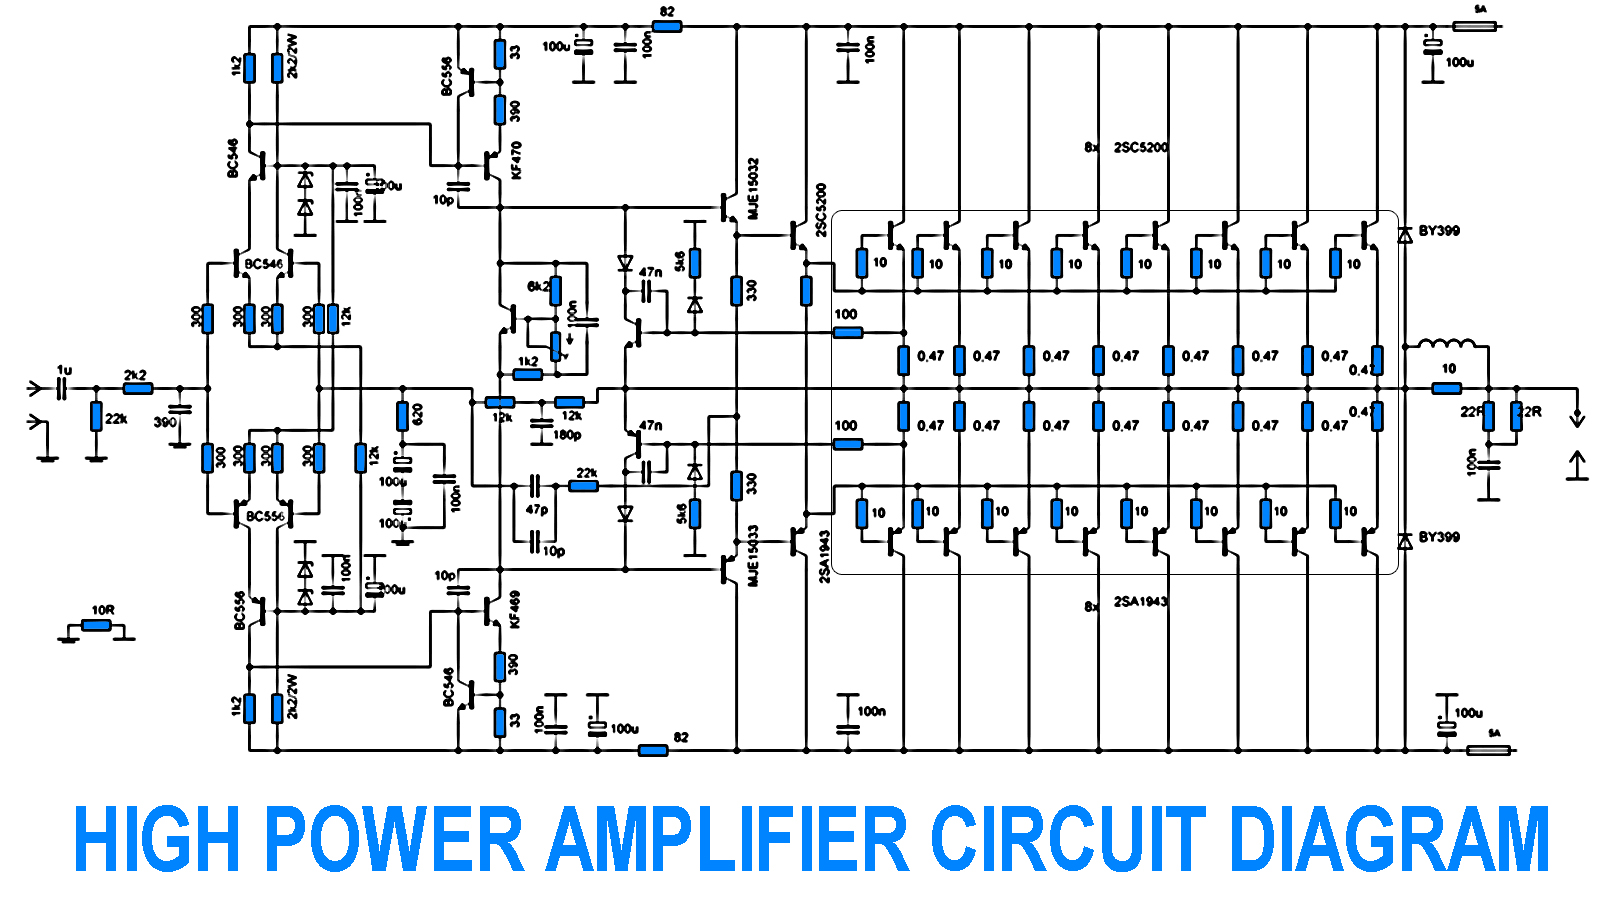 Grozzart: 2sc5200 2sa1943 Amplifier Circuit